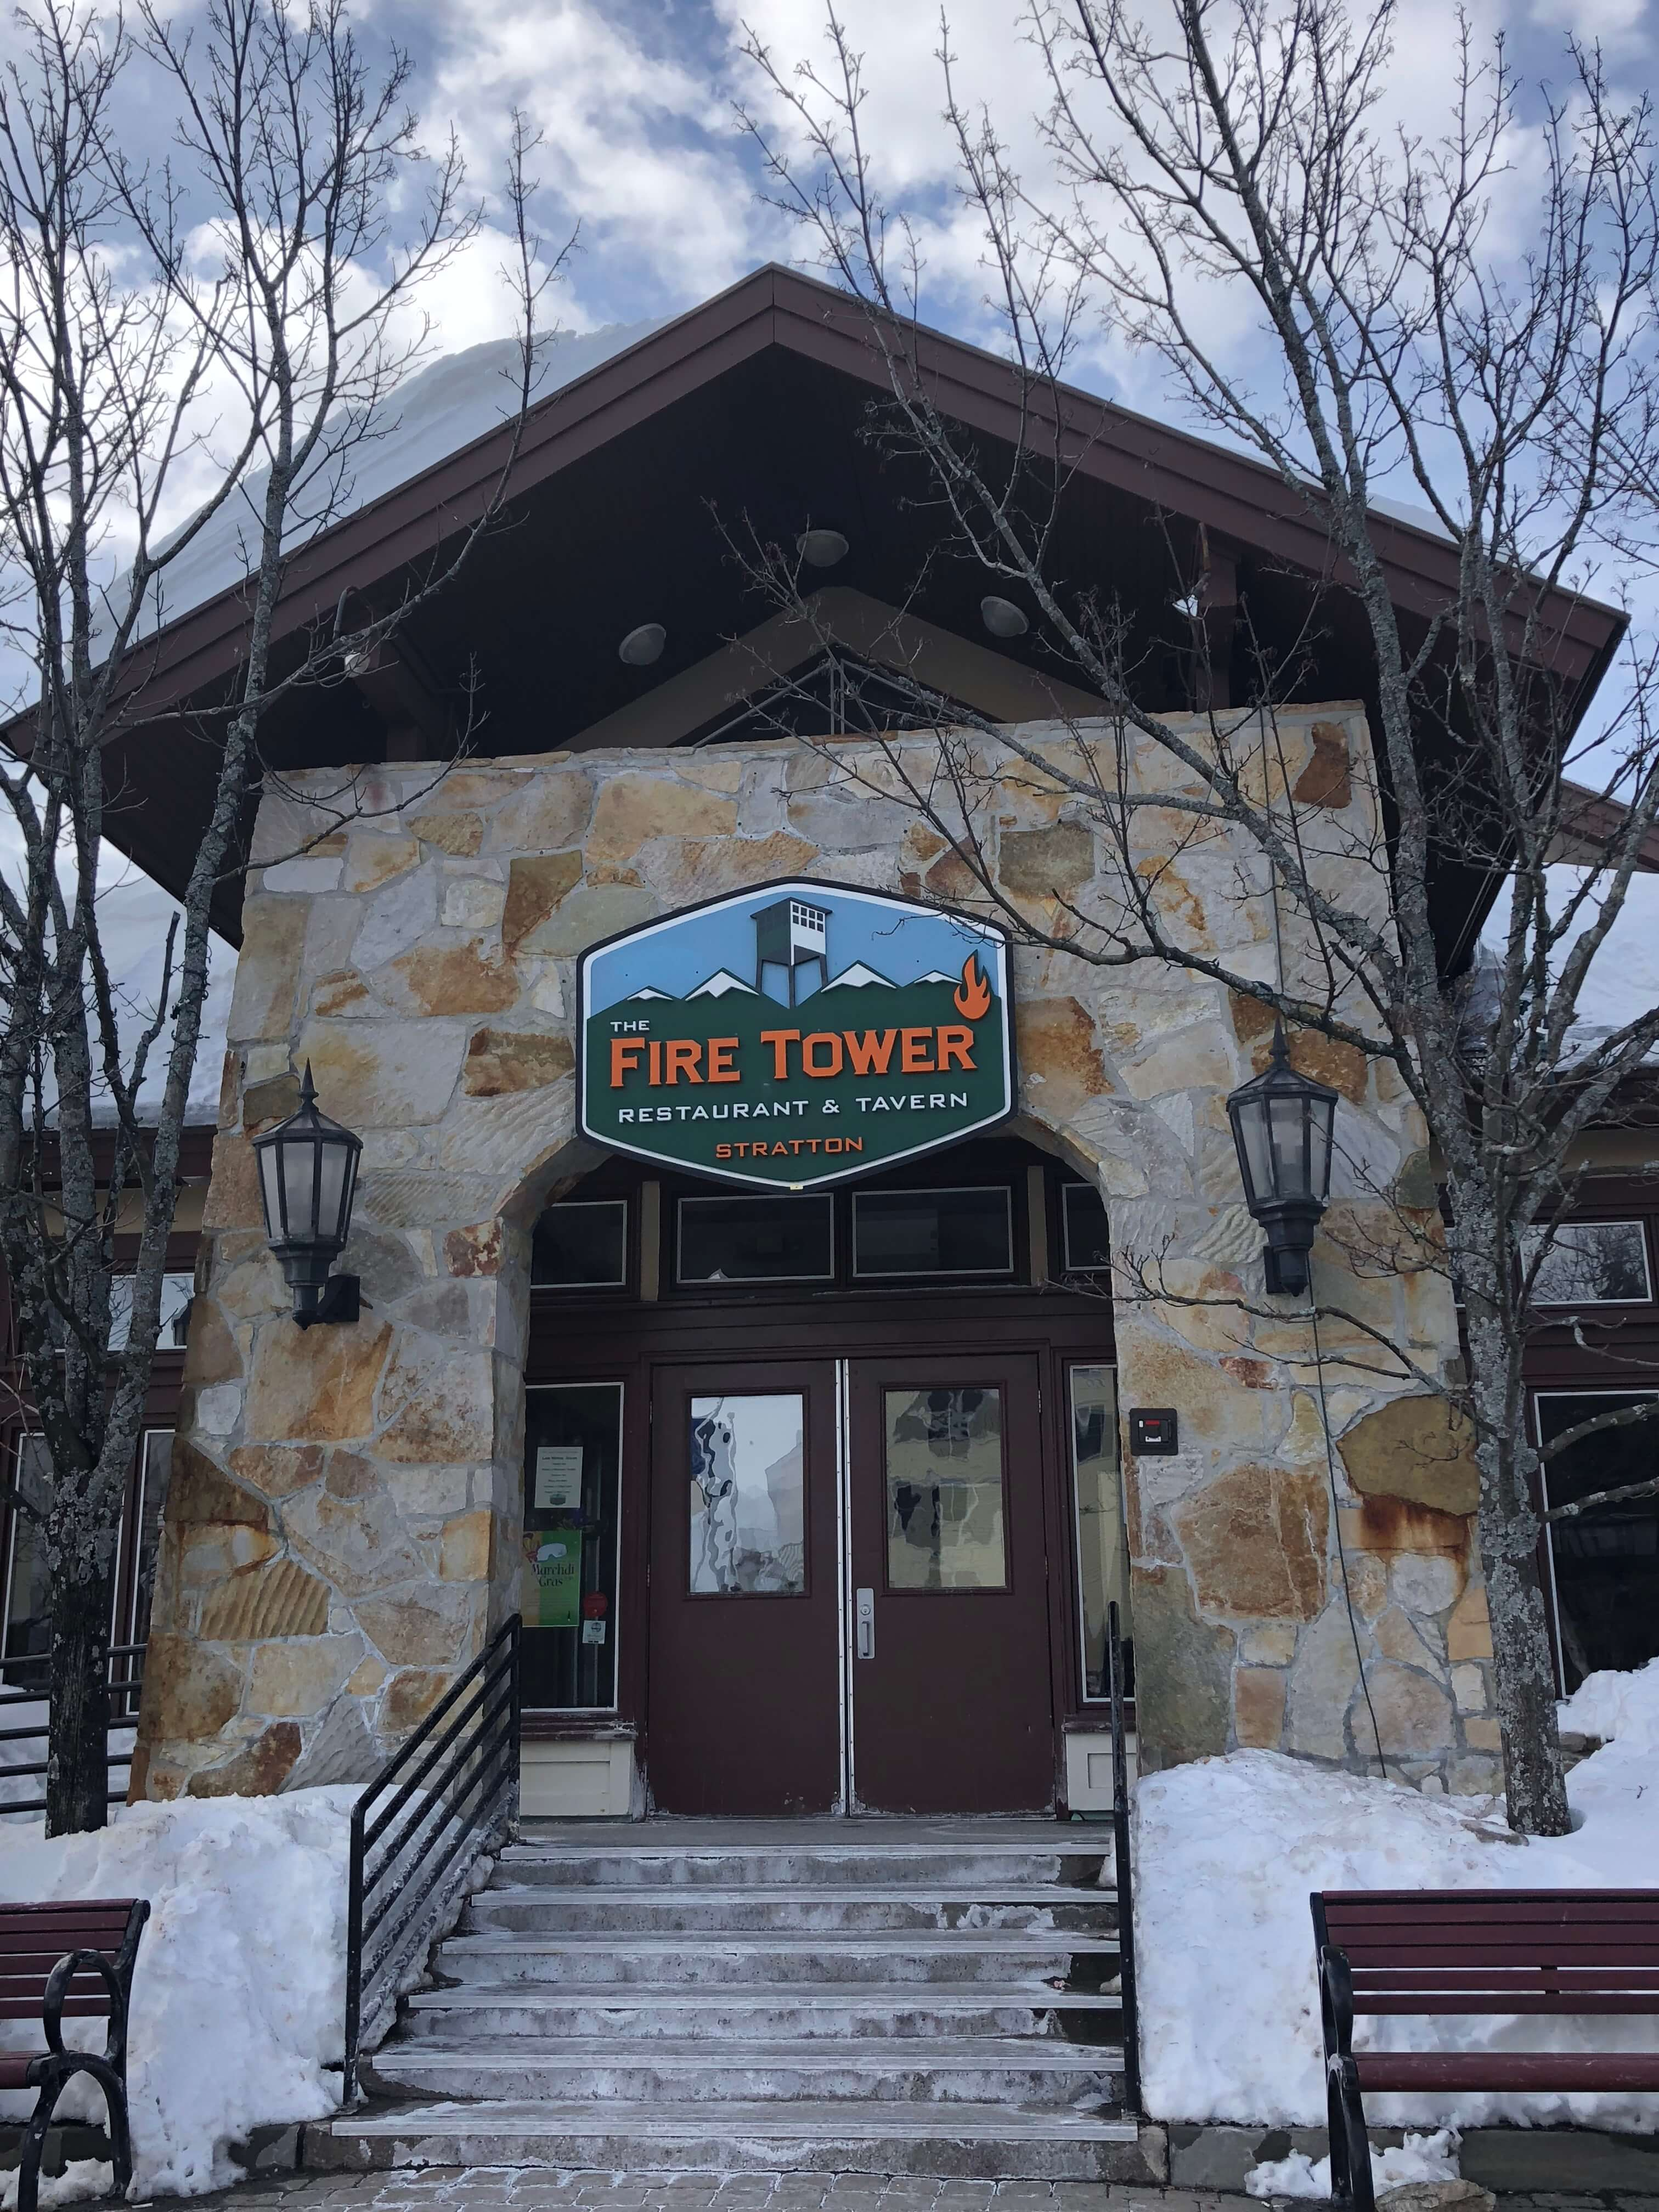 The Fire Tower Restaurant and Tavern: Delicious Food and Drink Options for Après Ski